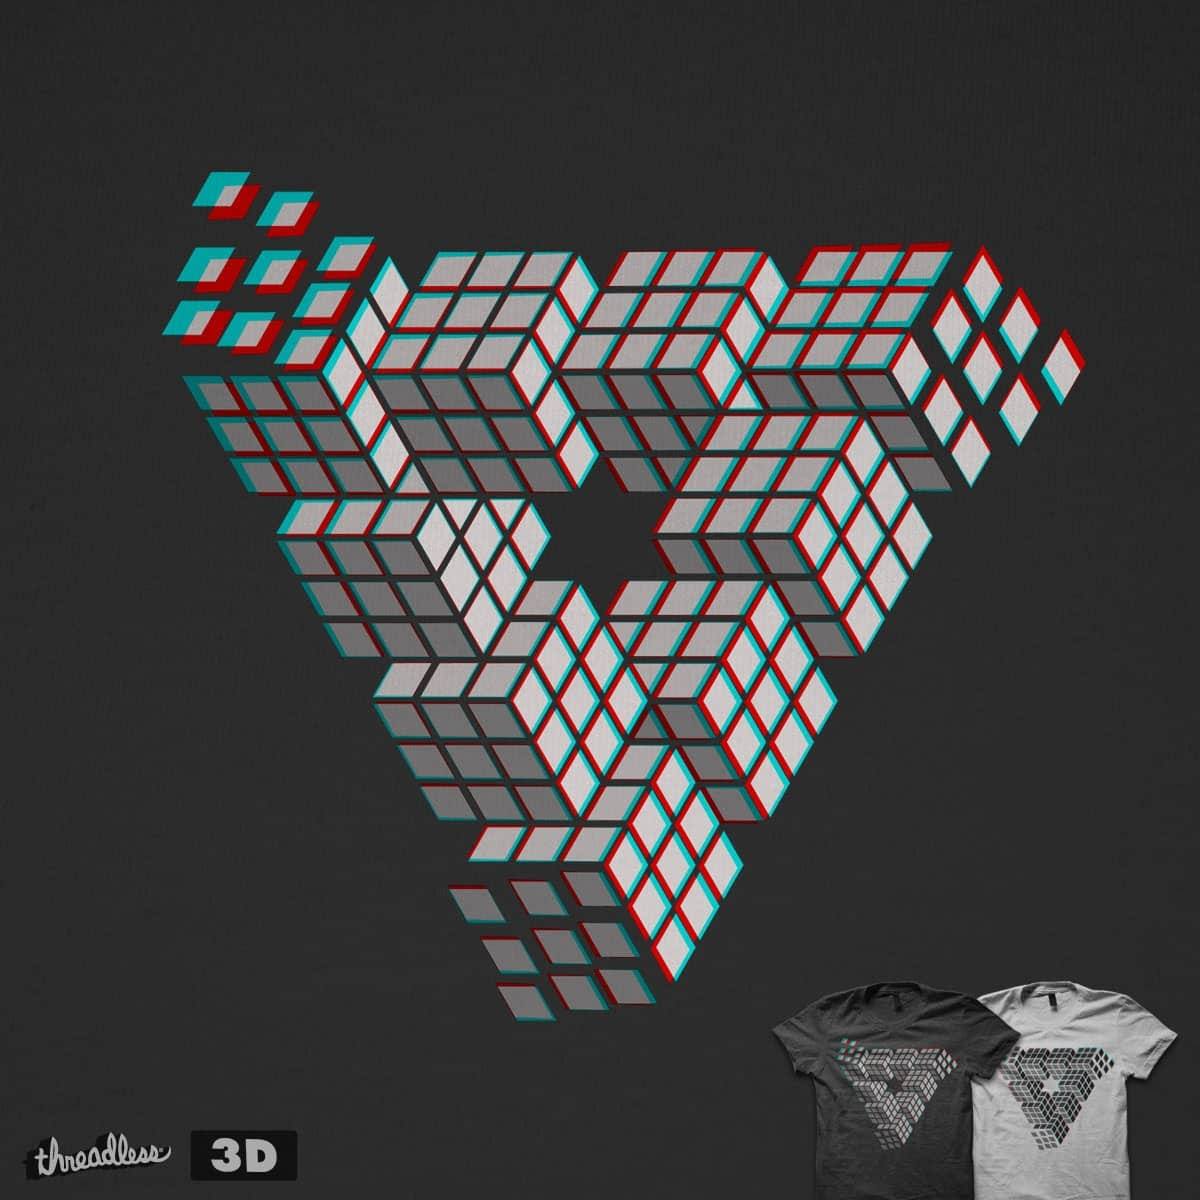 I'M PUZZL3D by quick-brown-fox on Threadless